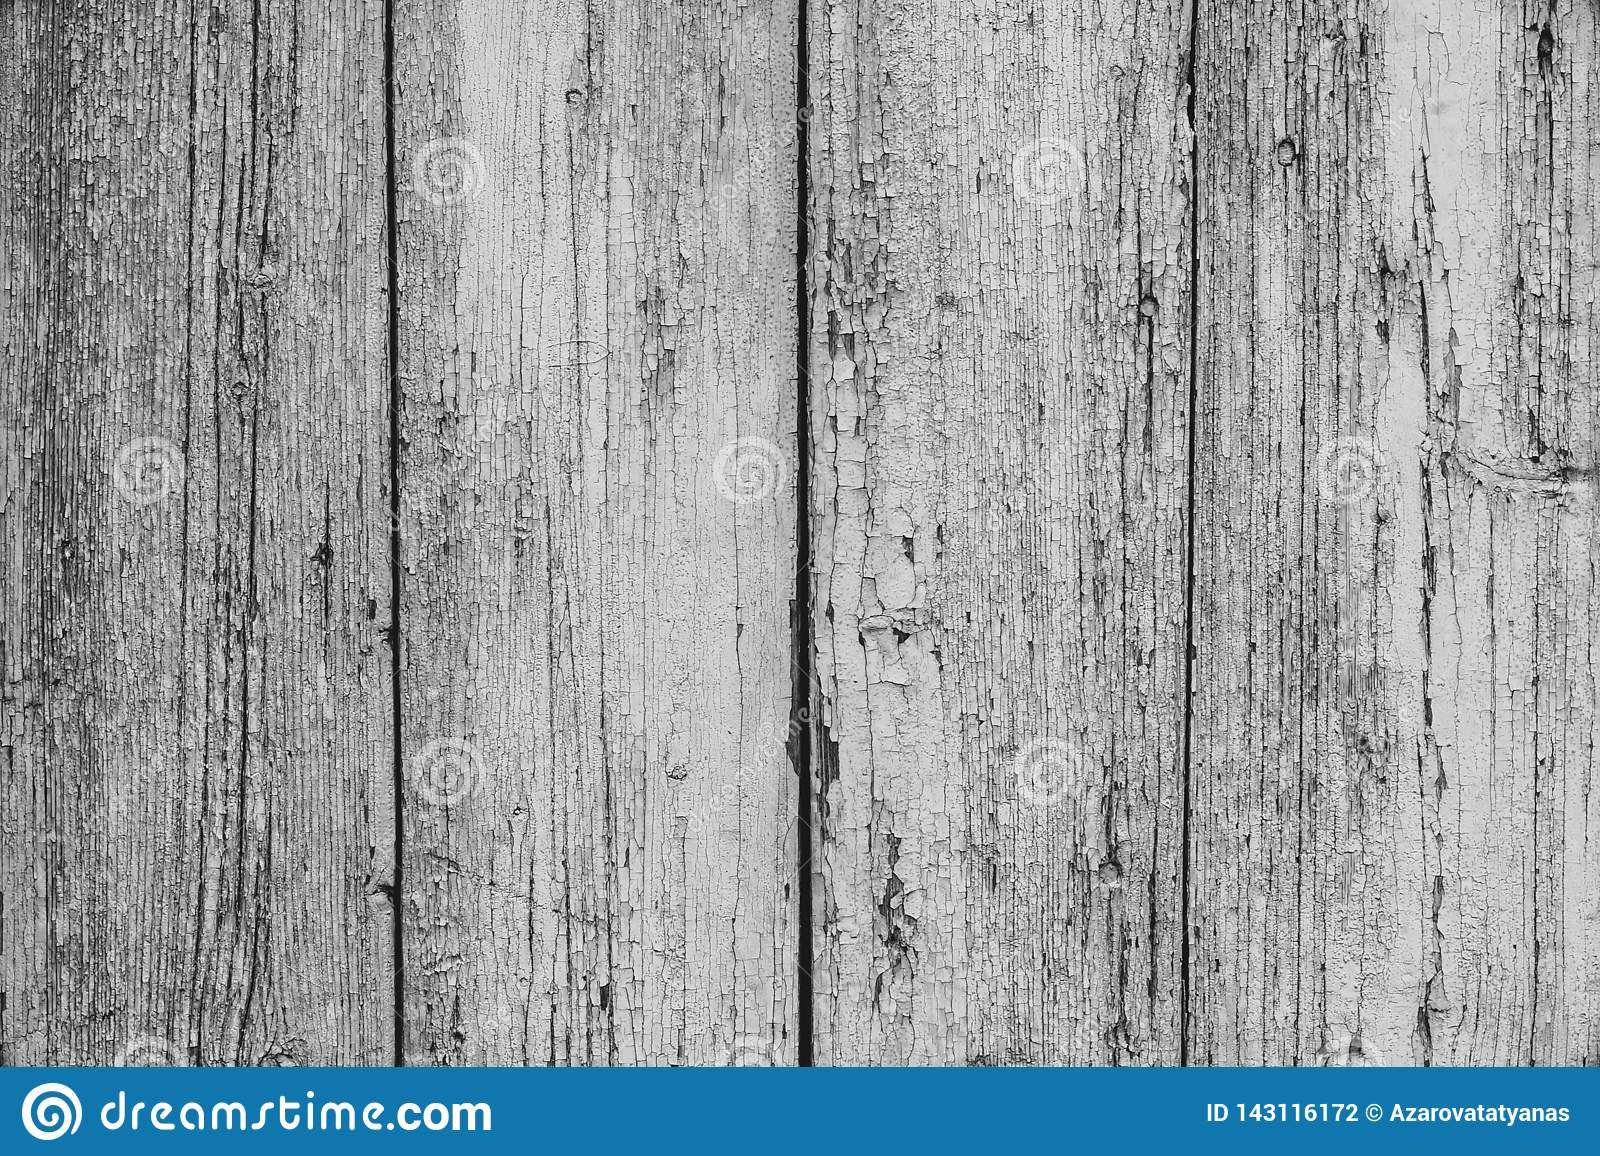 Old white painted rustic fence in vintage style. Retro wood texture background. Gray wooden table. Dirty white wood surface.